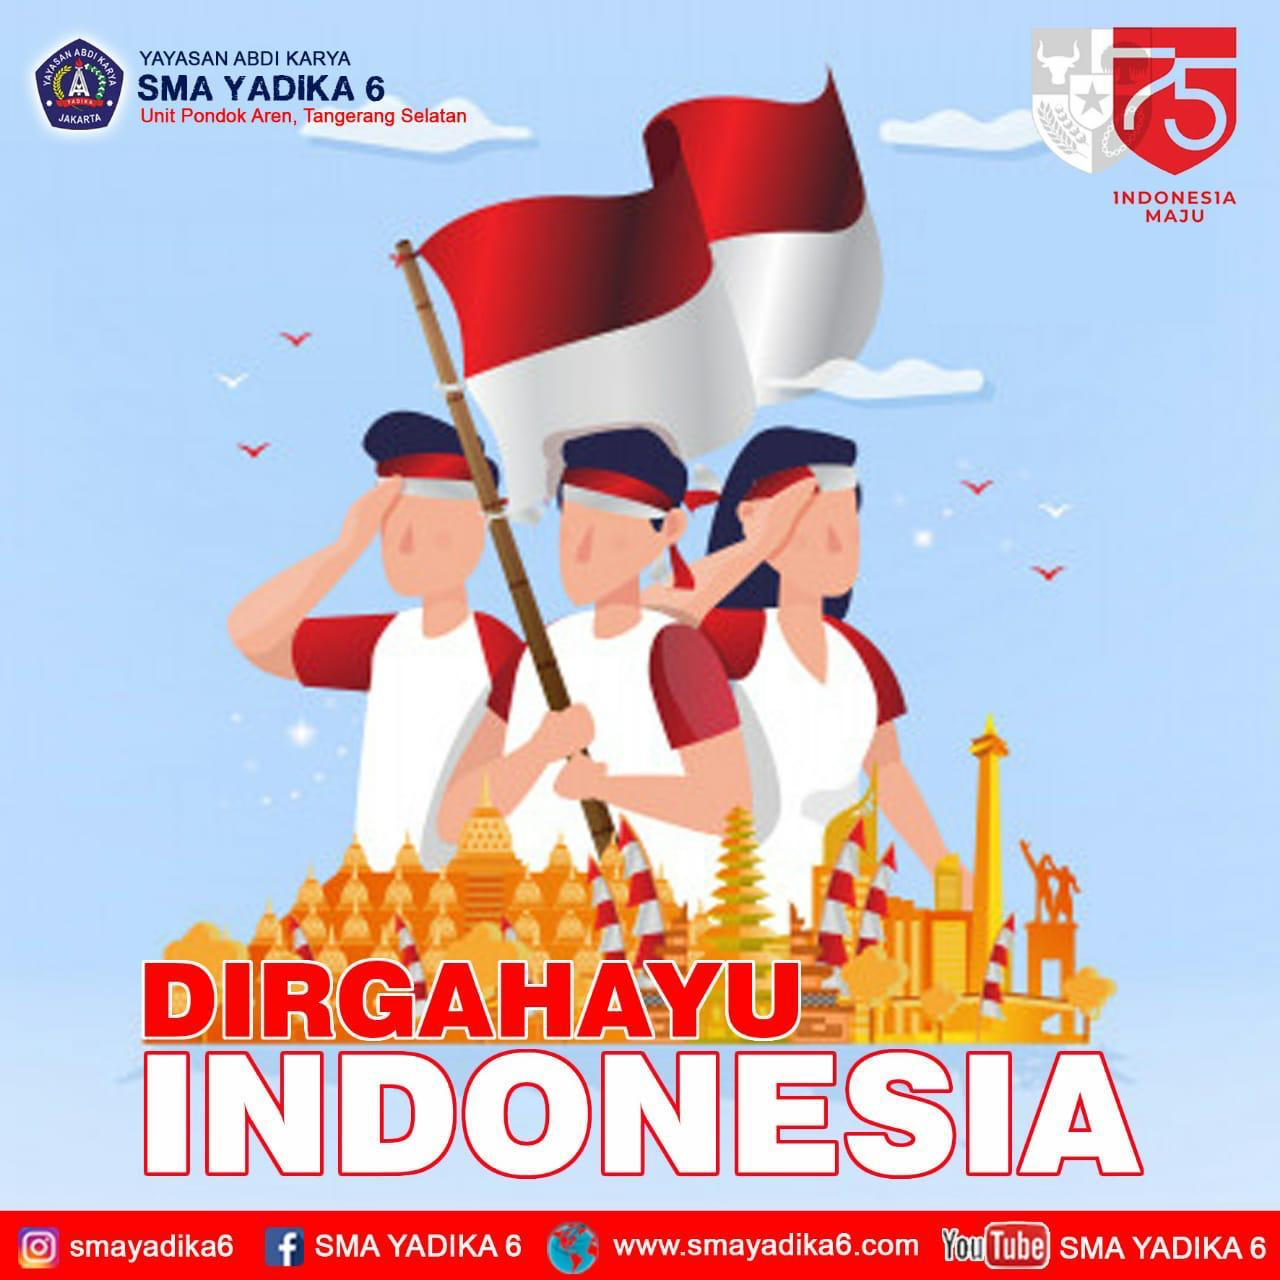 DIRGAHAYU REPUBLIK INDONESIA 75TH